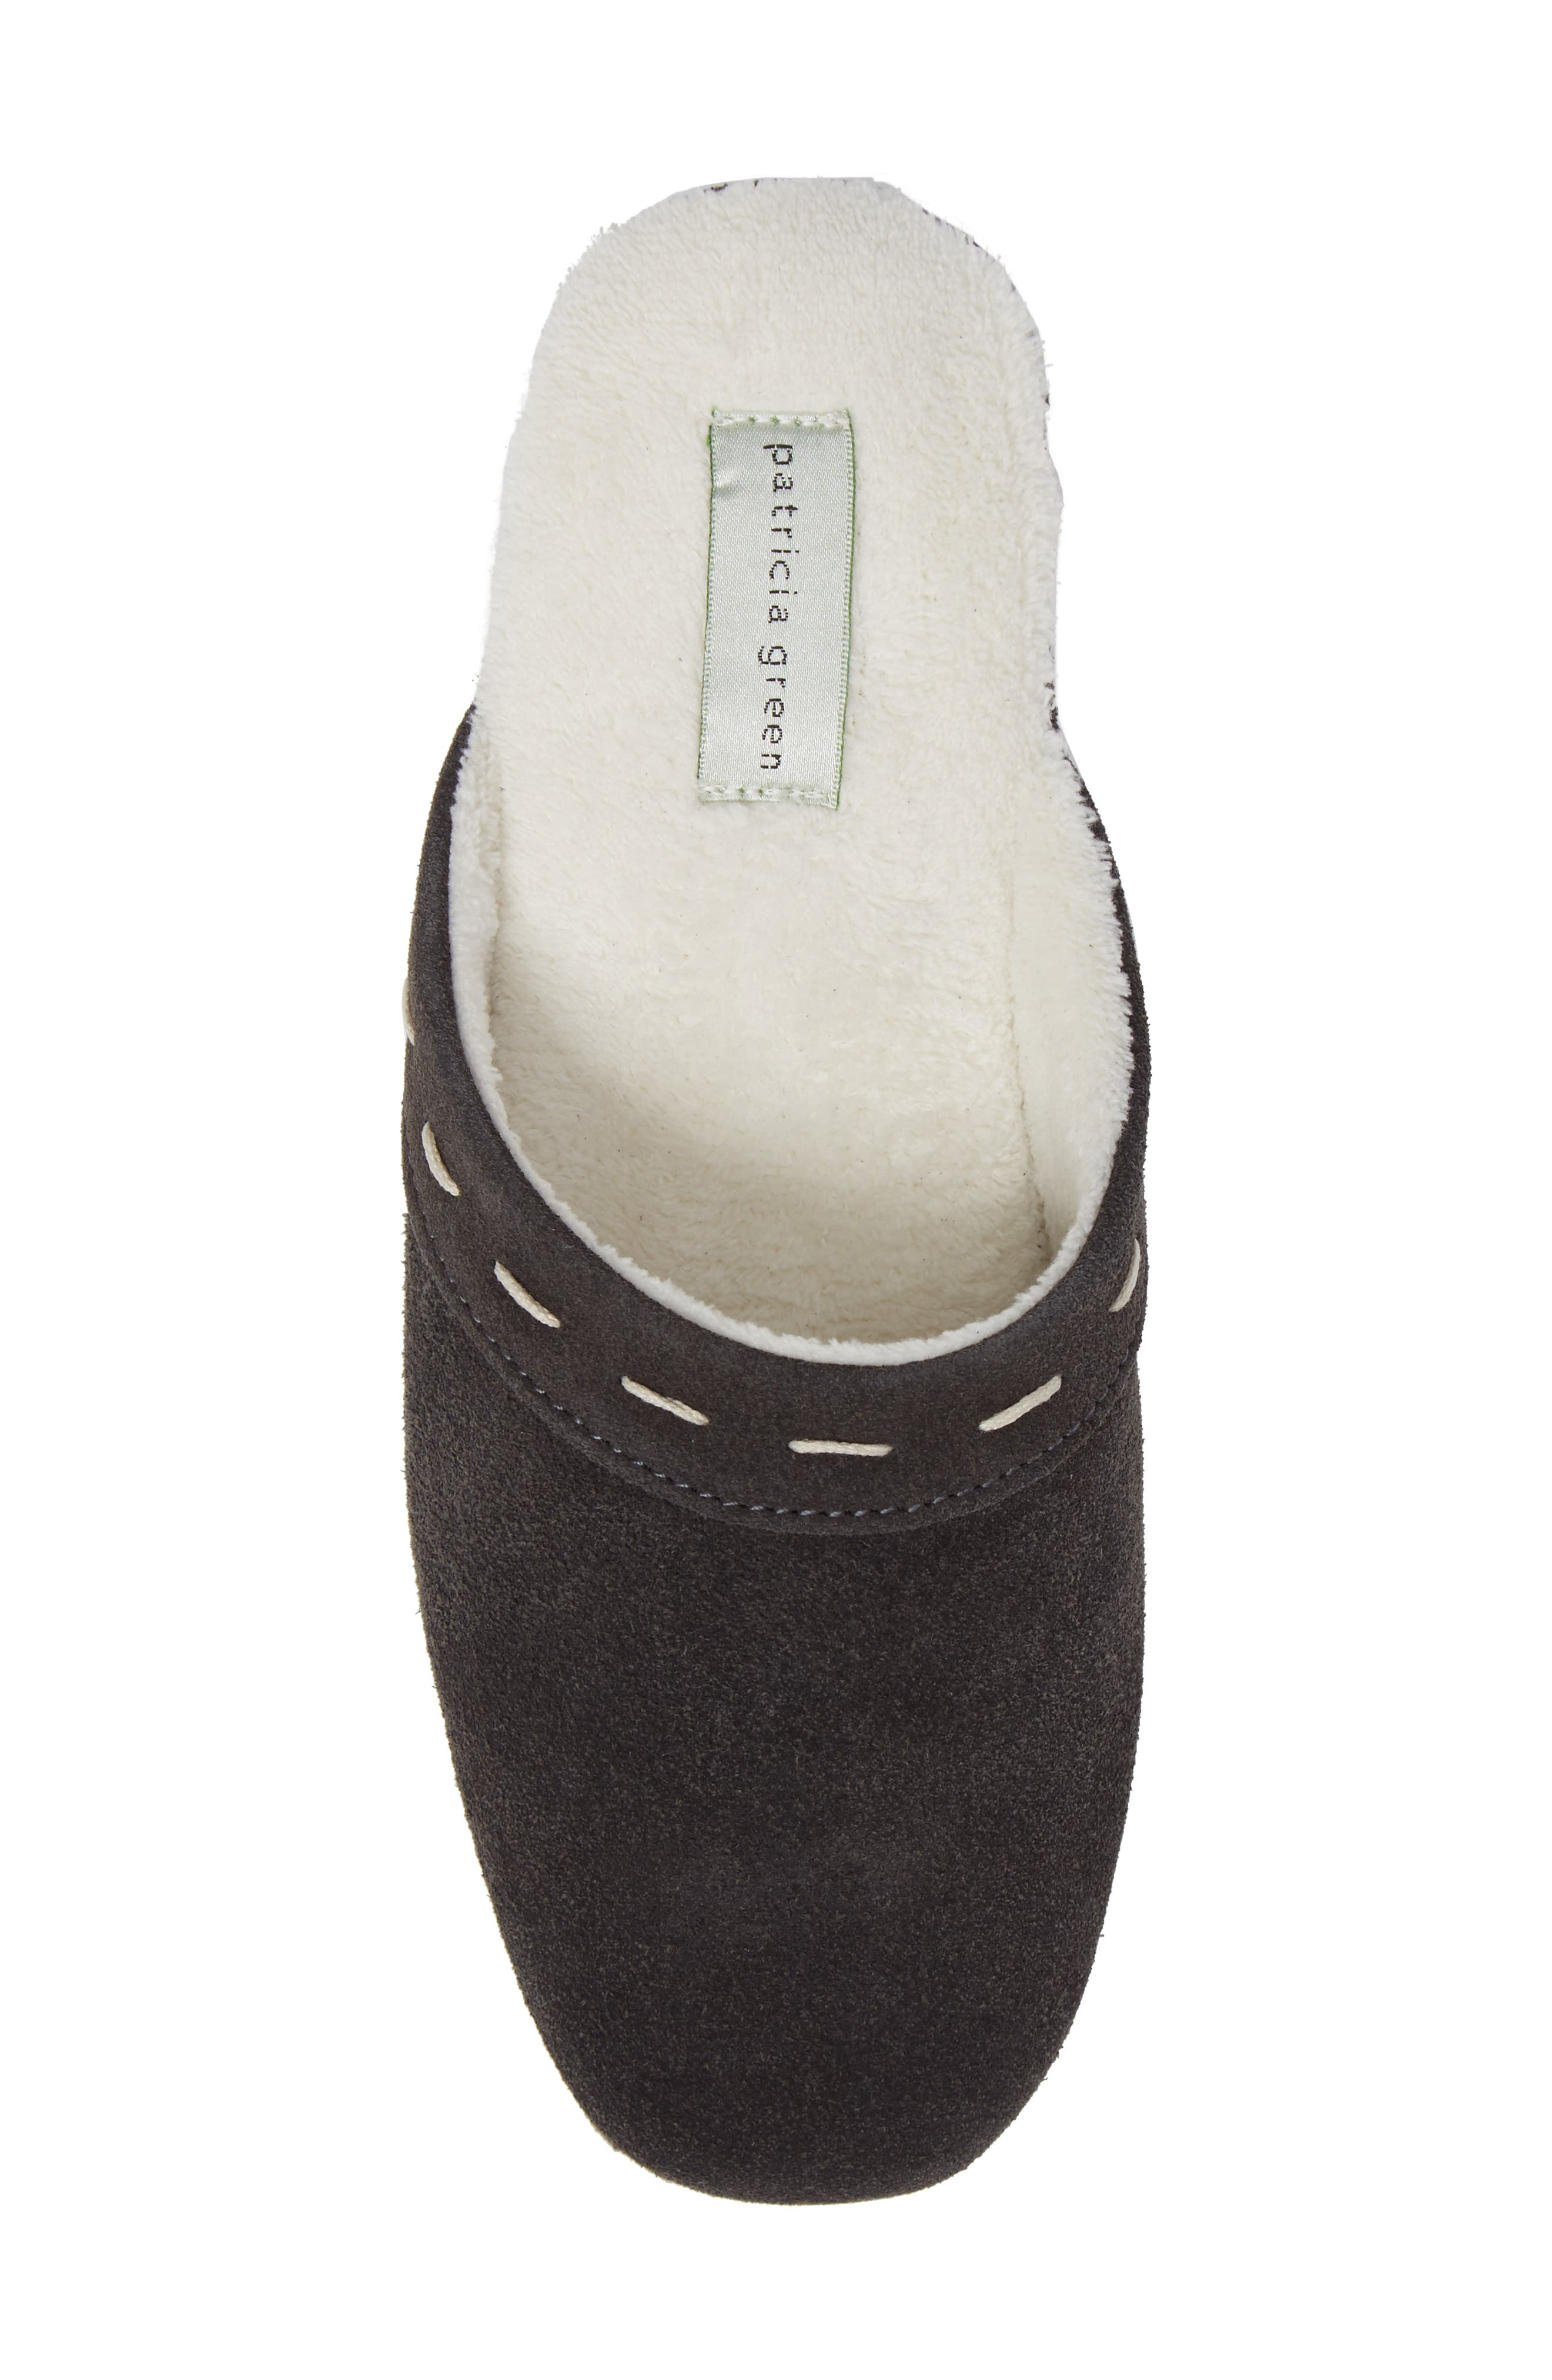 Mayfair Wedge Slipper,                             Alternate thumbnail 4, color,                             Charcoal Suede